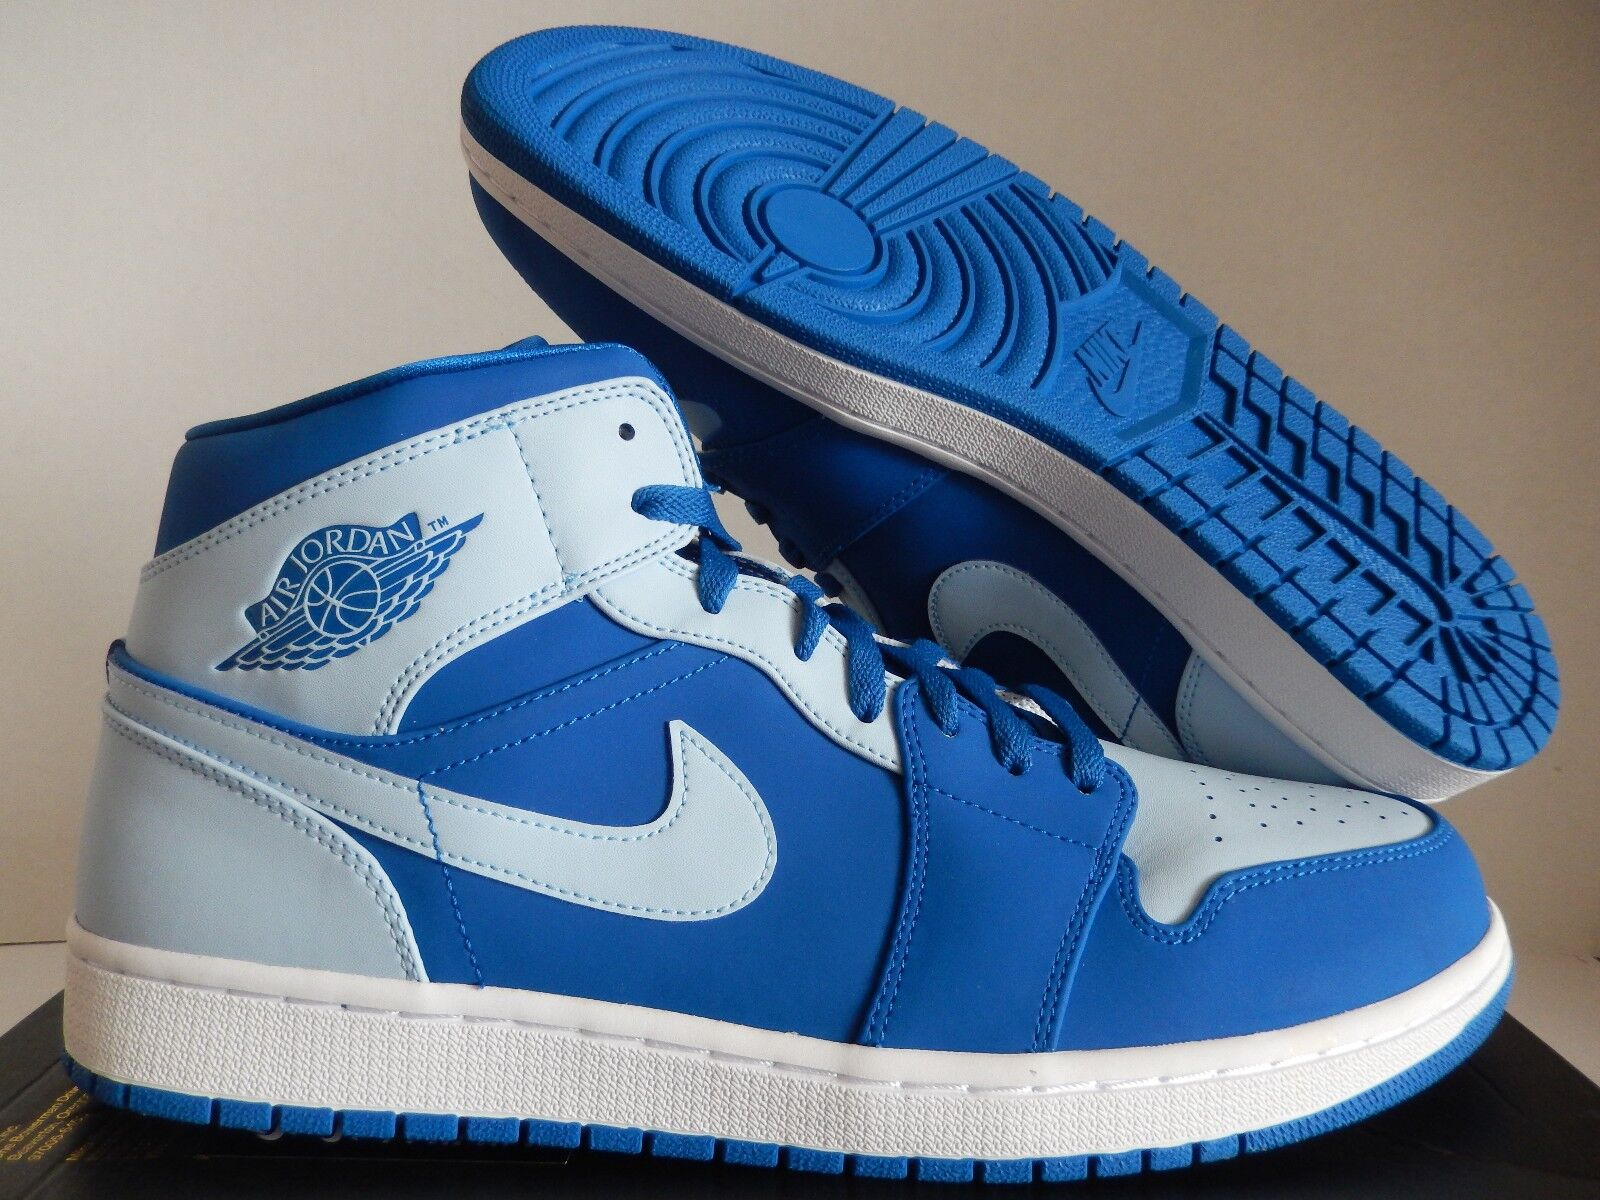 713a3fb0dc7 NIKE JORDAN 1 MID TEAM blueE-ICE blueE-WHITE SZ 15 [554724-400] AIR ROYAL  ndxsdv4415-Athletic Shoes